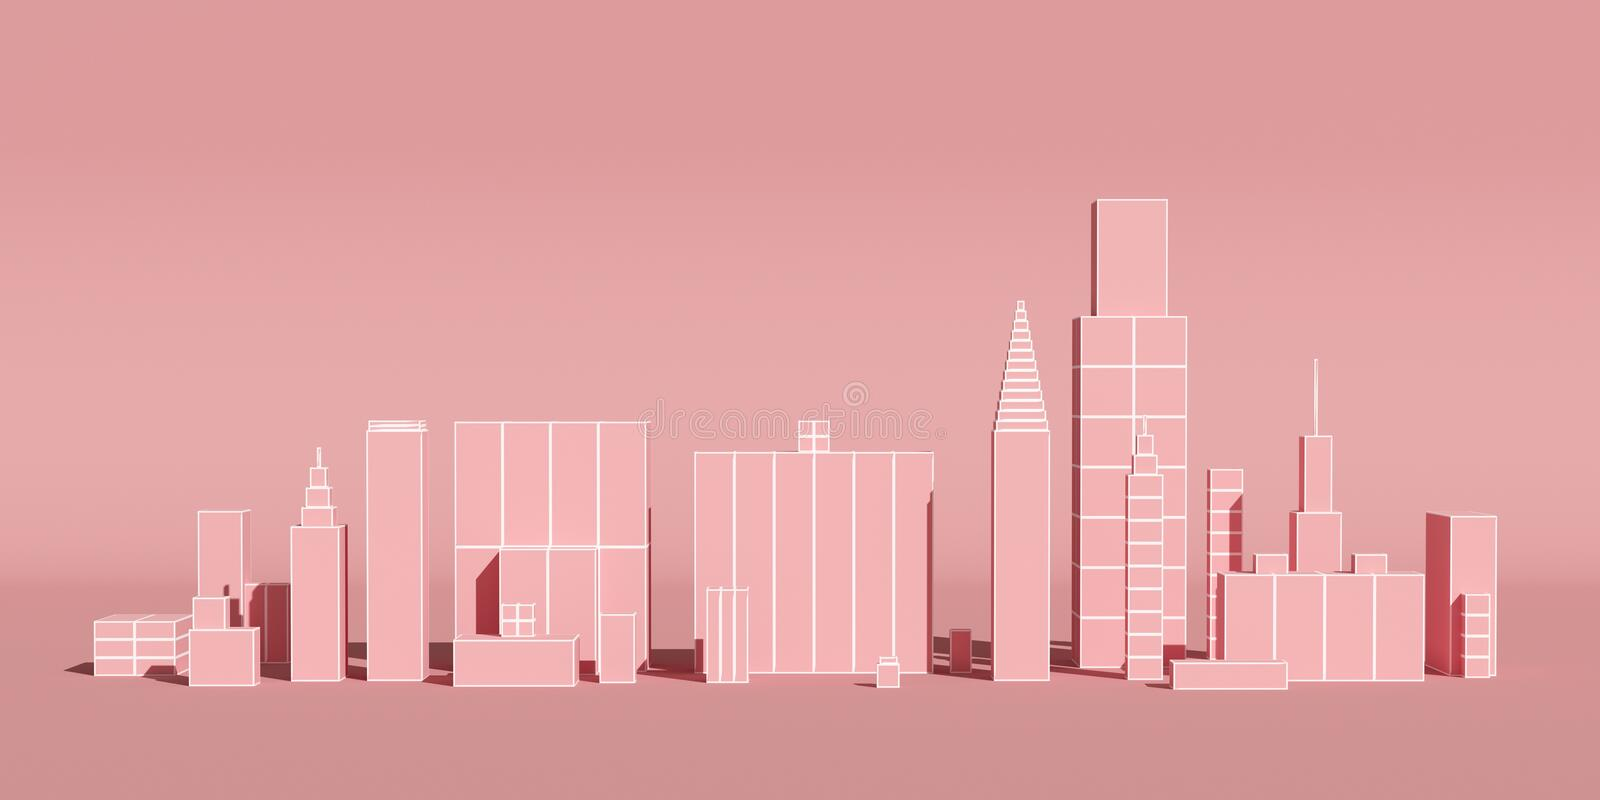 Abstract city with skyscrapers background, futuristic city panorama. 3d illustration. Pink royalty free illustration